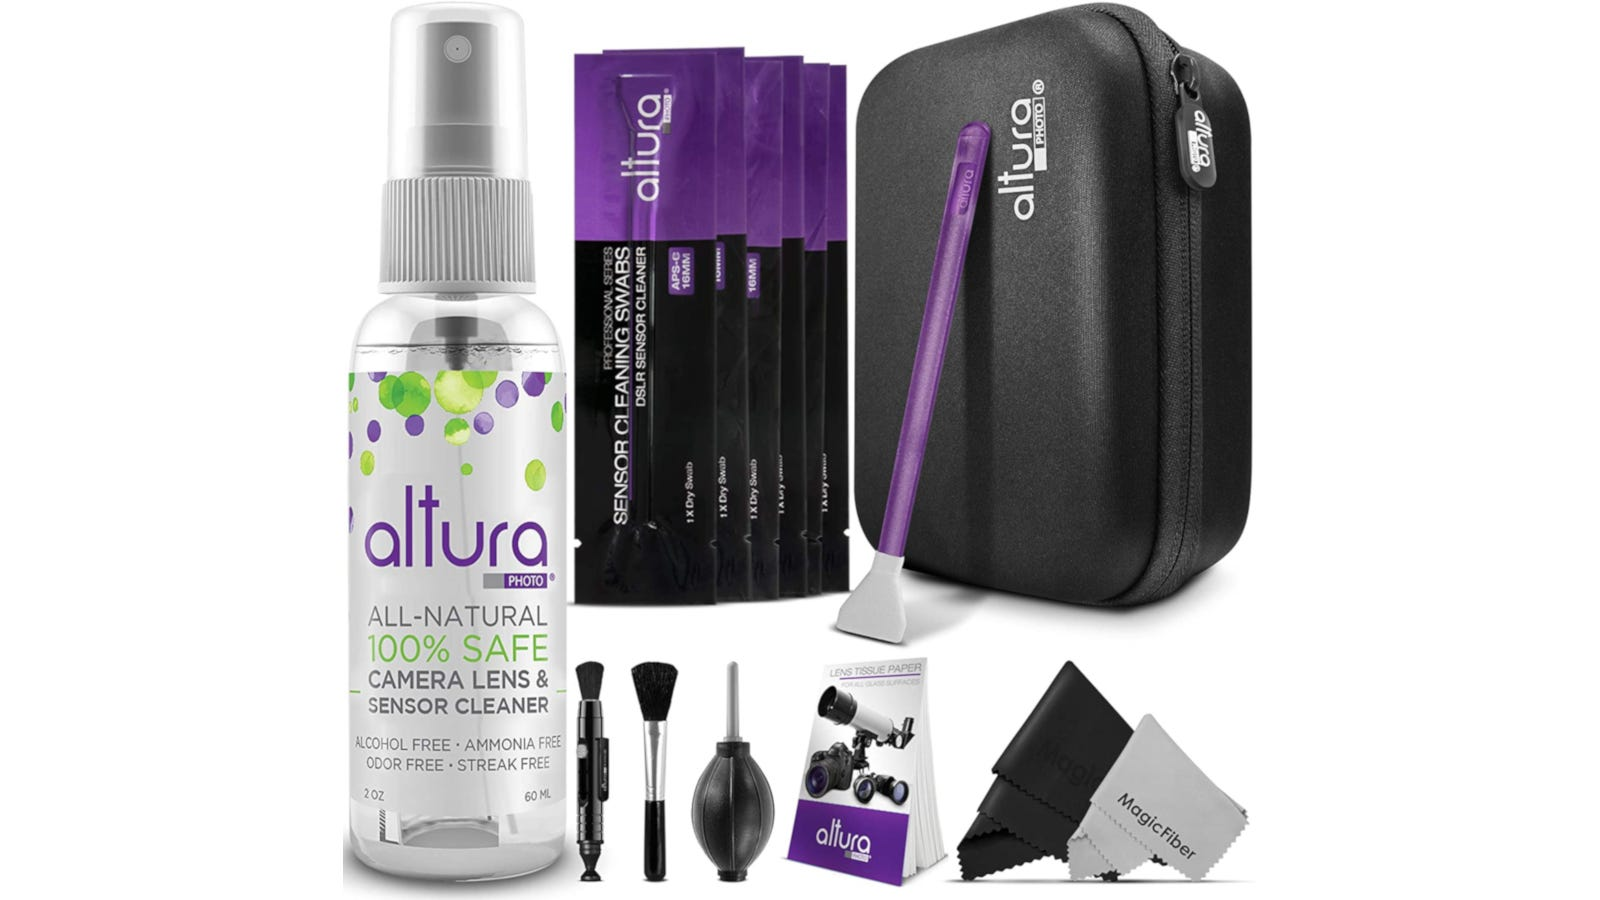 Camera lens cleaning kit set with case, sensor swabs, air blower, brush, and more